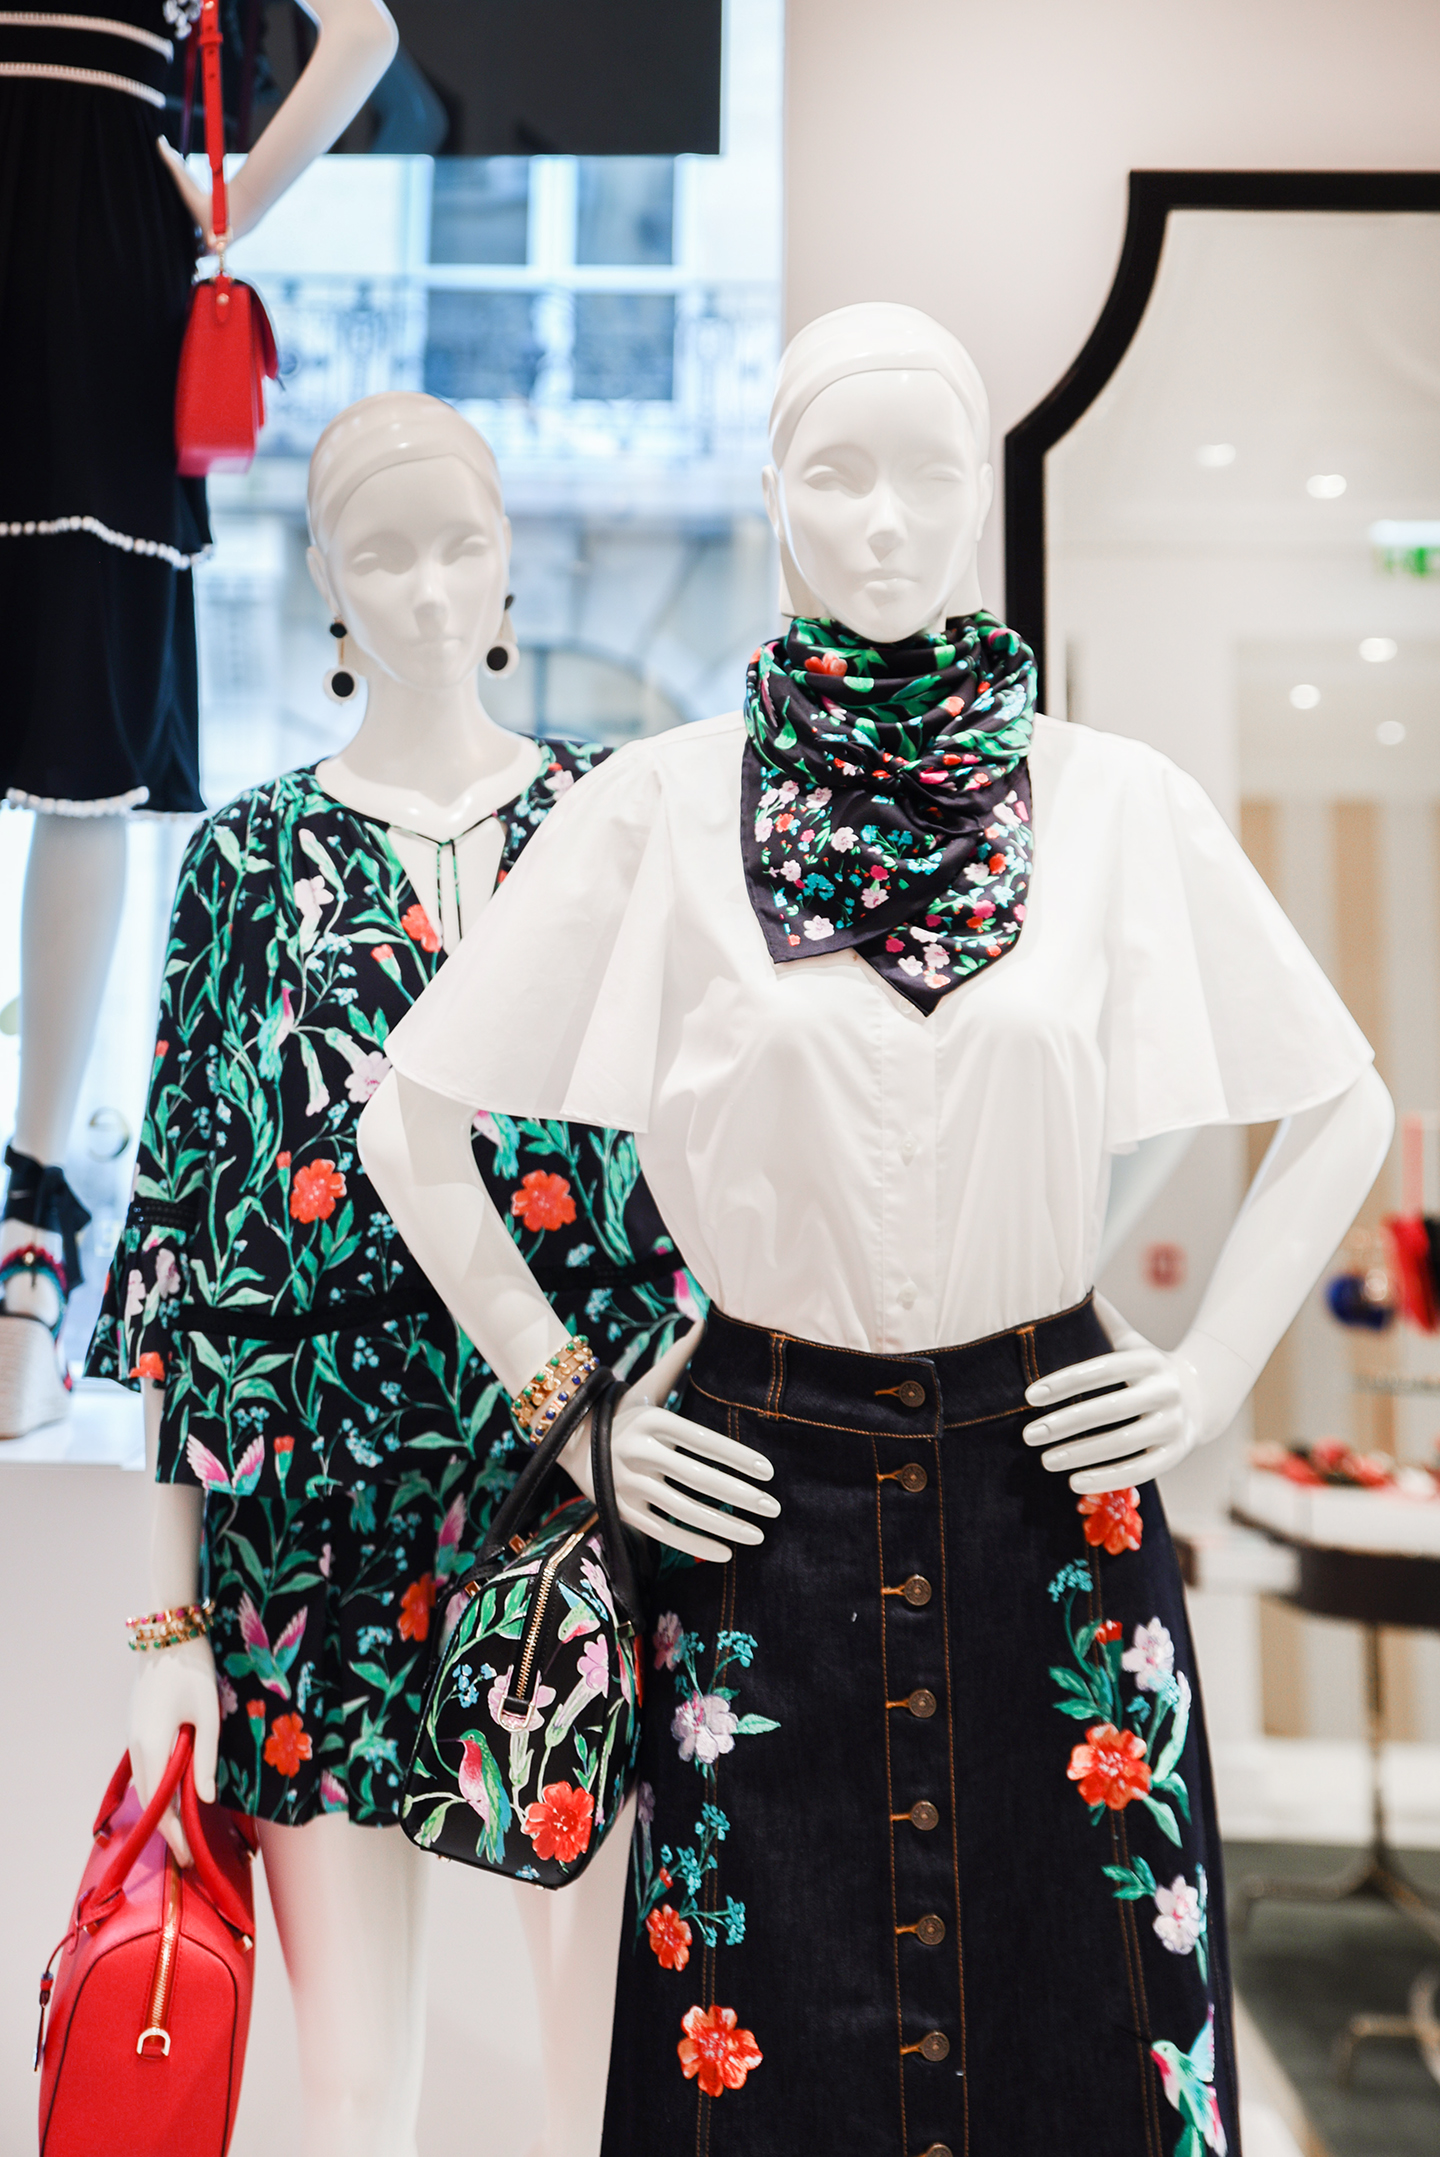 Blog-Mode-And-The-City-Lifestyle-Kate-Spade-Paris-418-rue-saint-honore-8